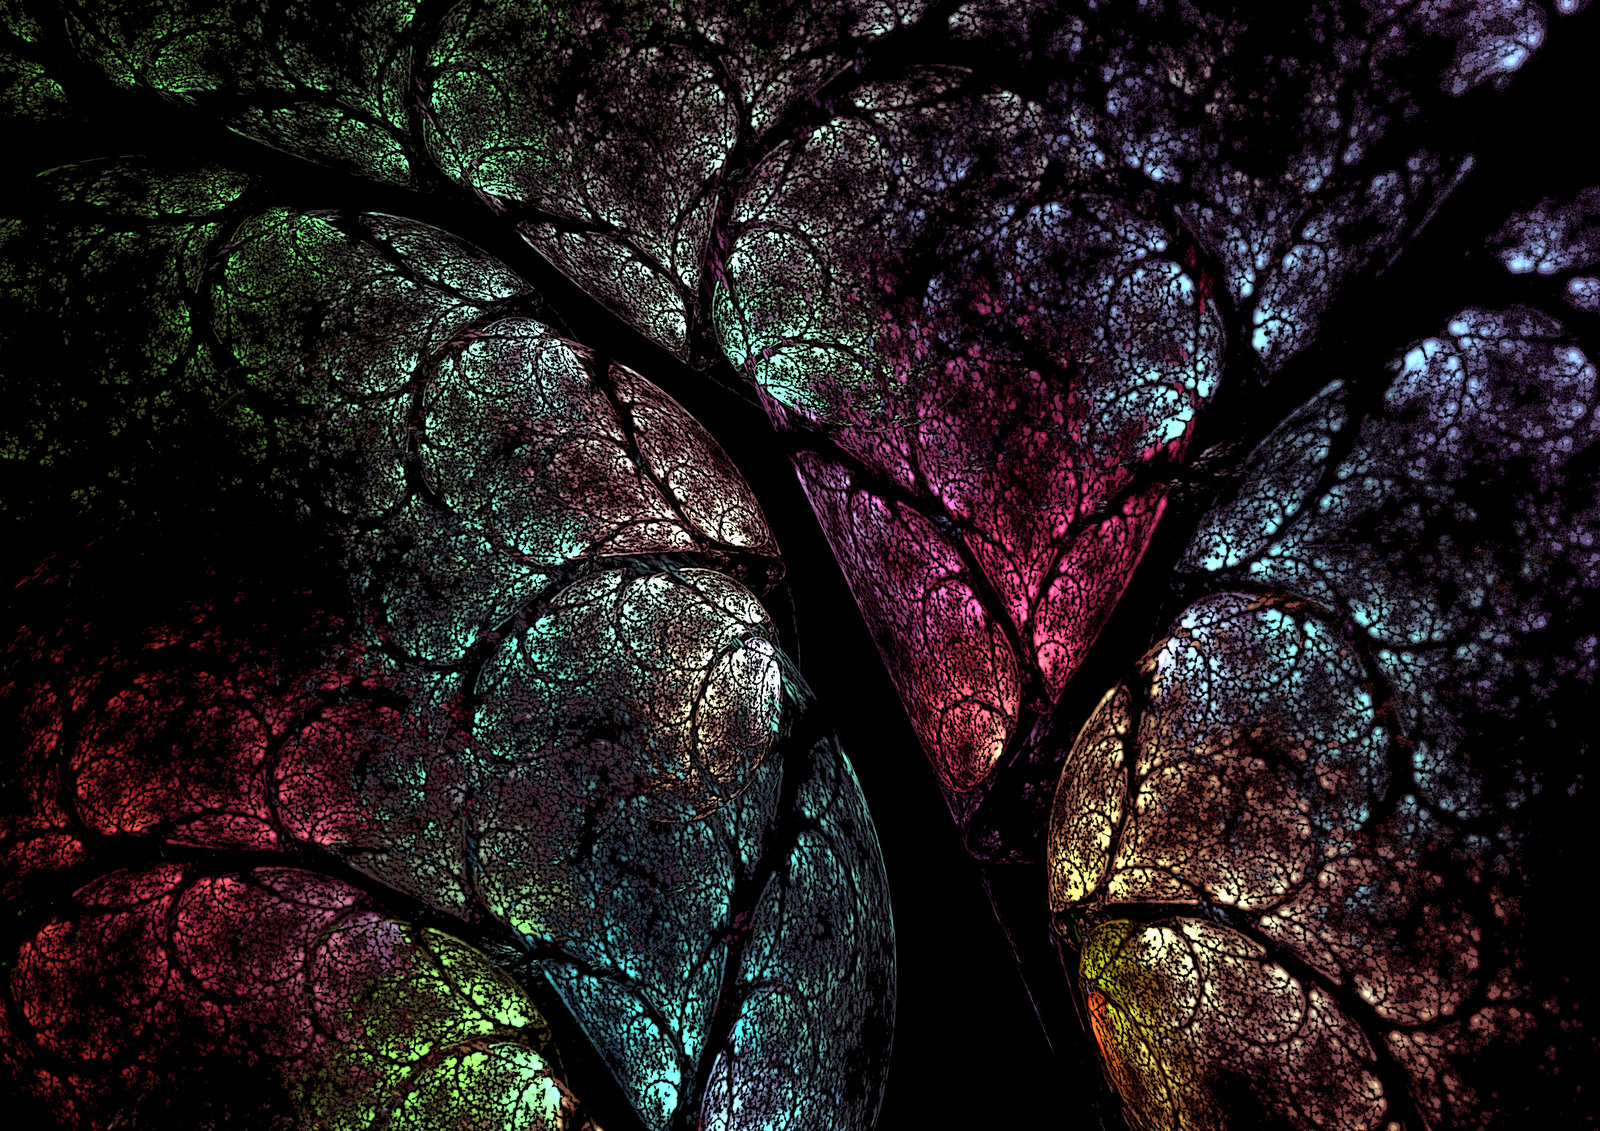 [50+] Celtic Tree of Life Wallpaper on WallpaperSafari